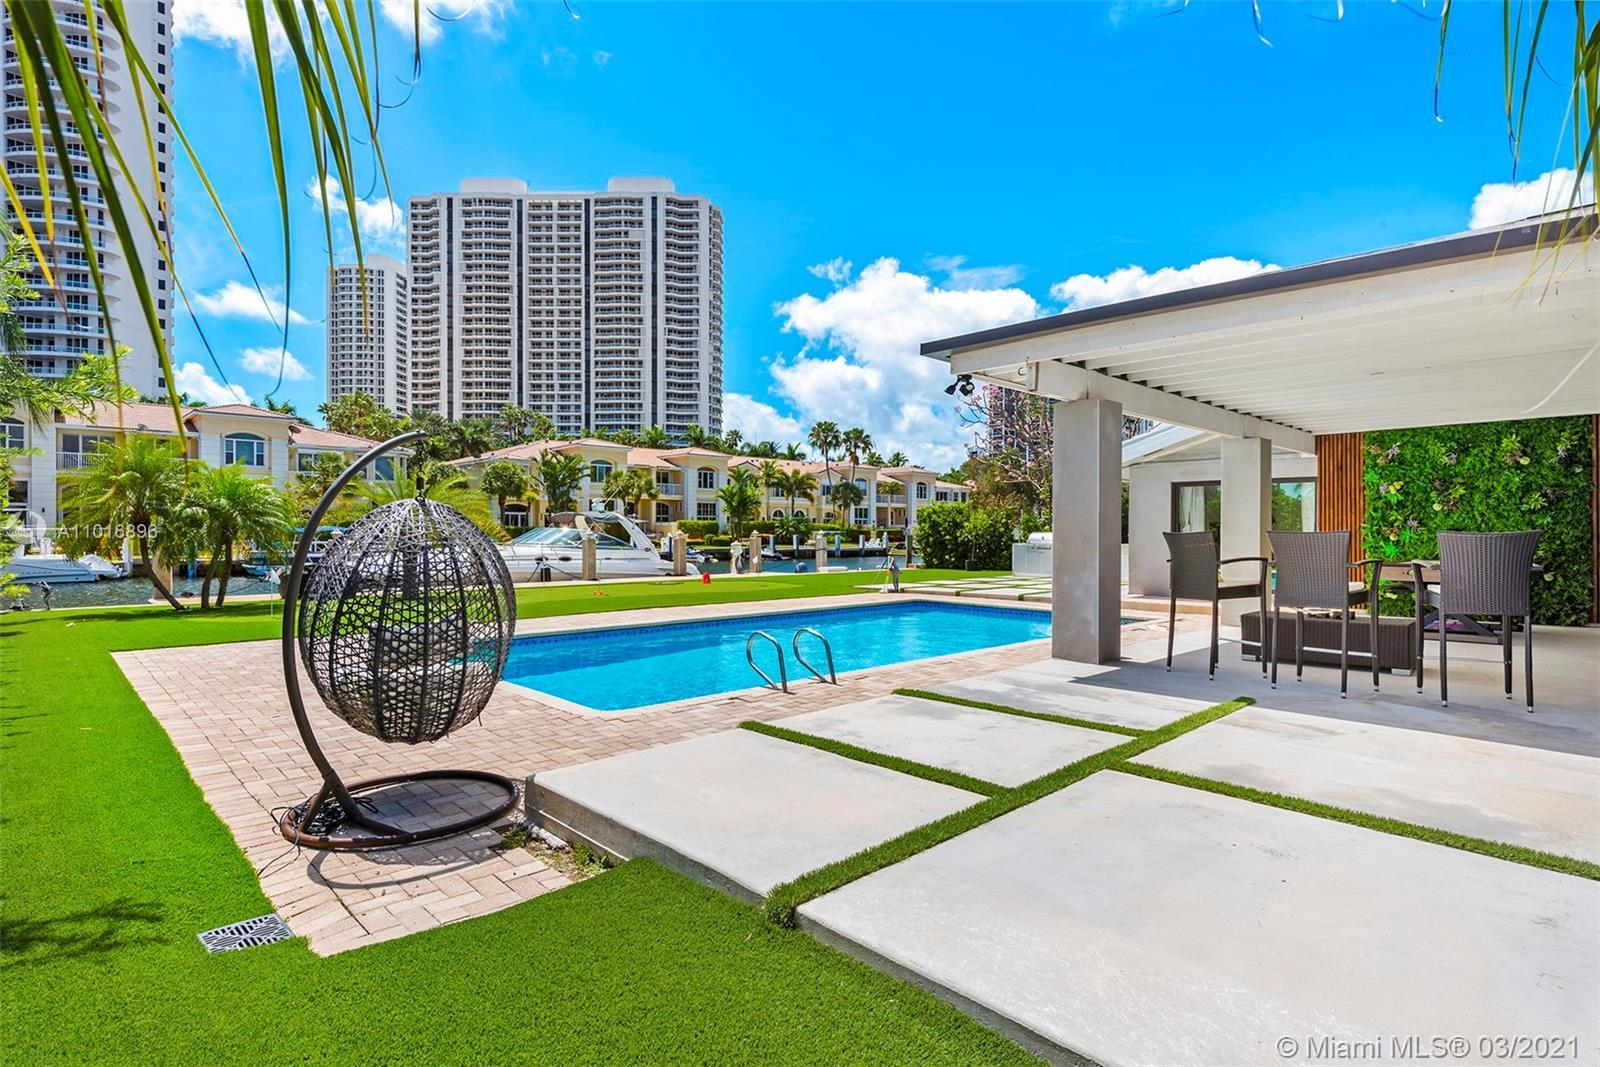 This newly renovated waterfront oasis in the exclusive gated community of Golden Isles offers paradi